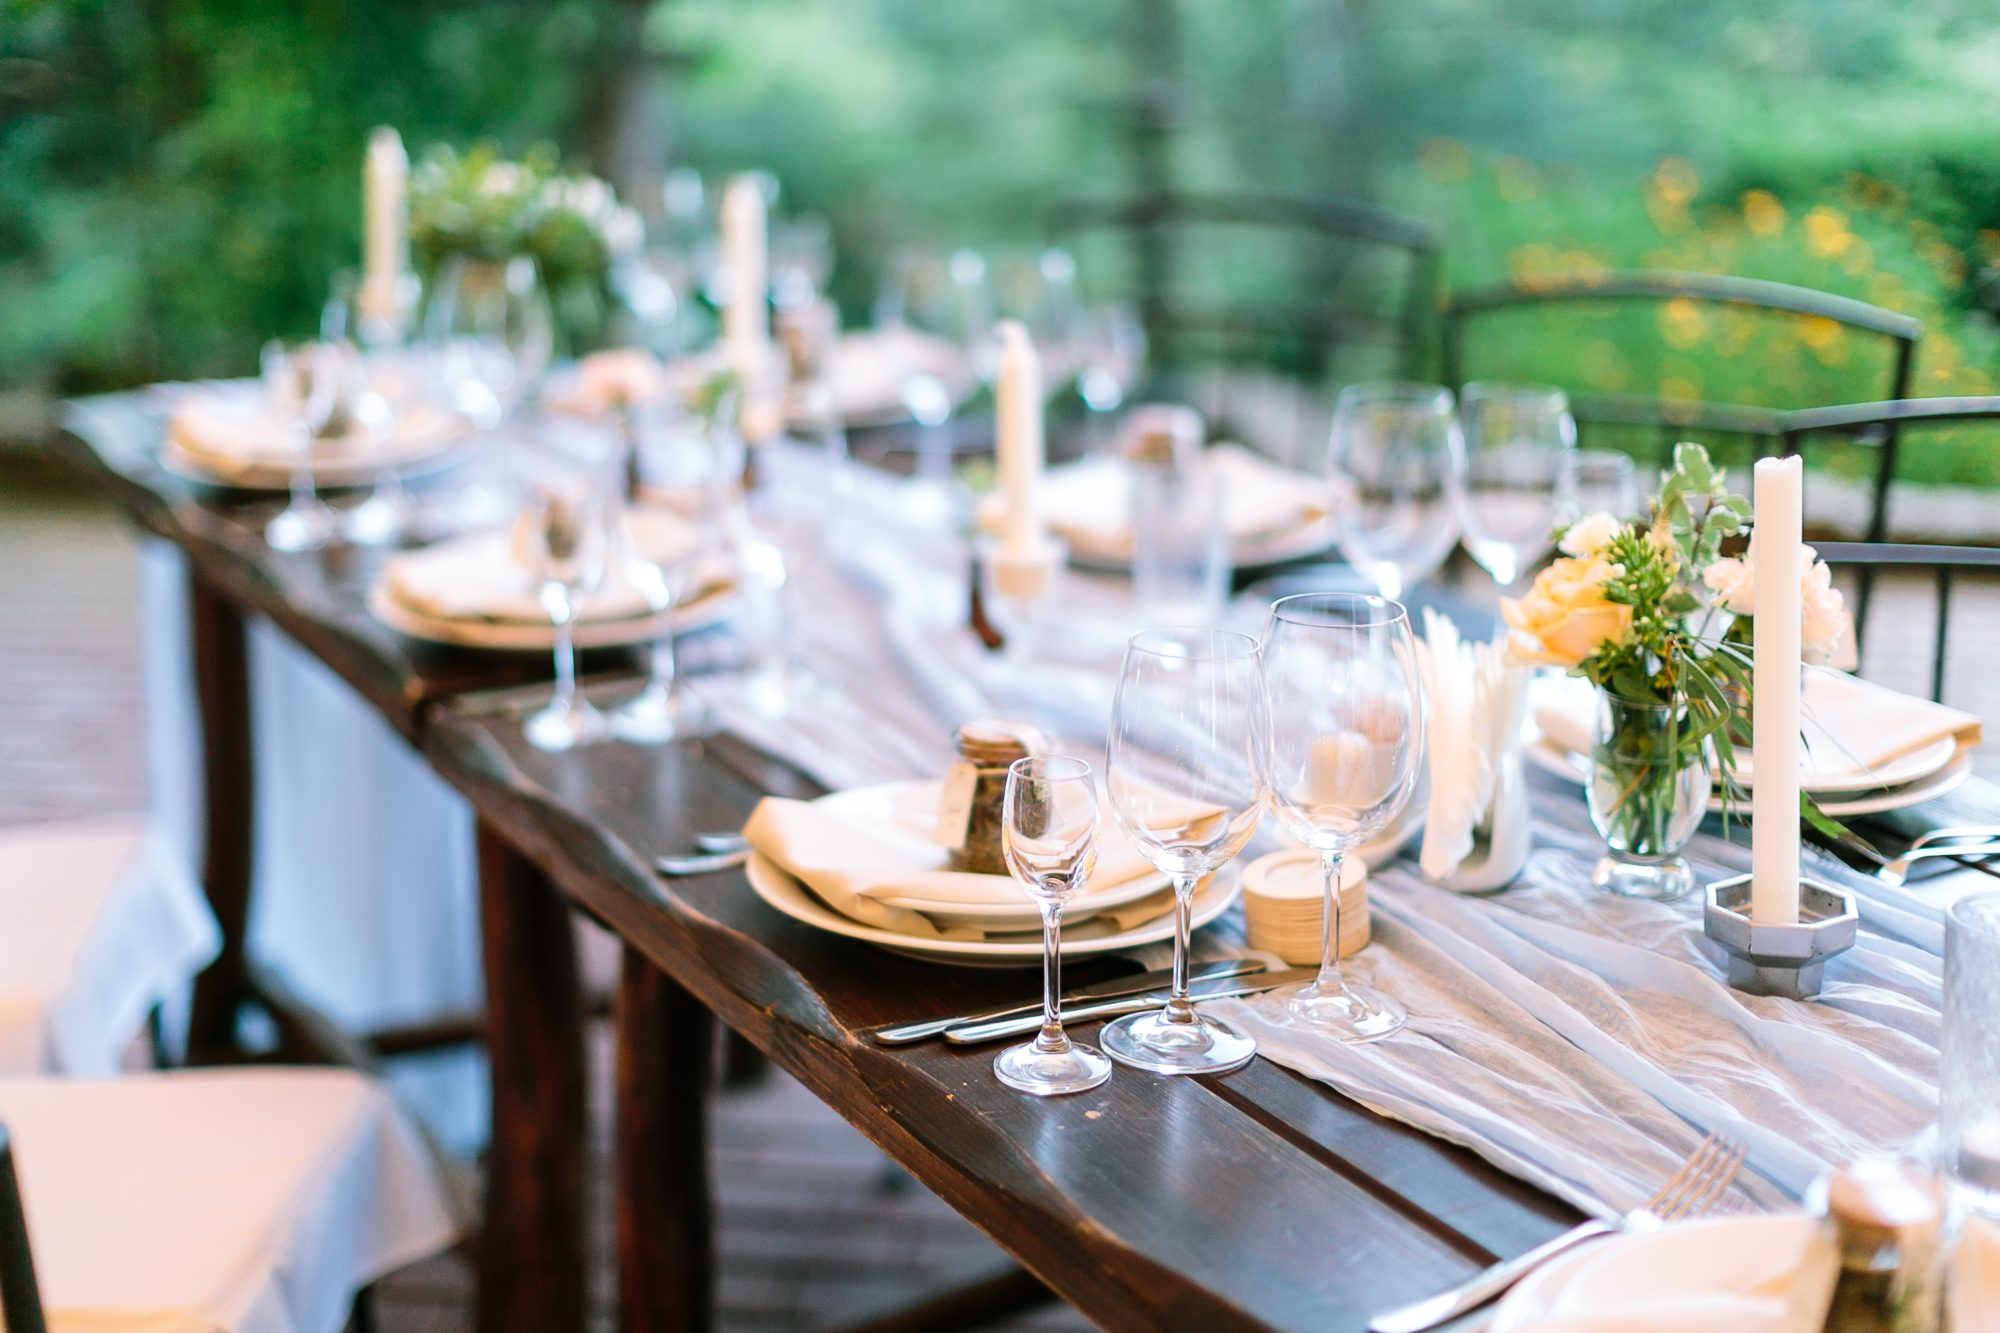 Wedding Menu Ideas: Outdoor table setting